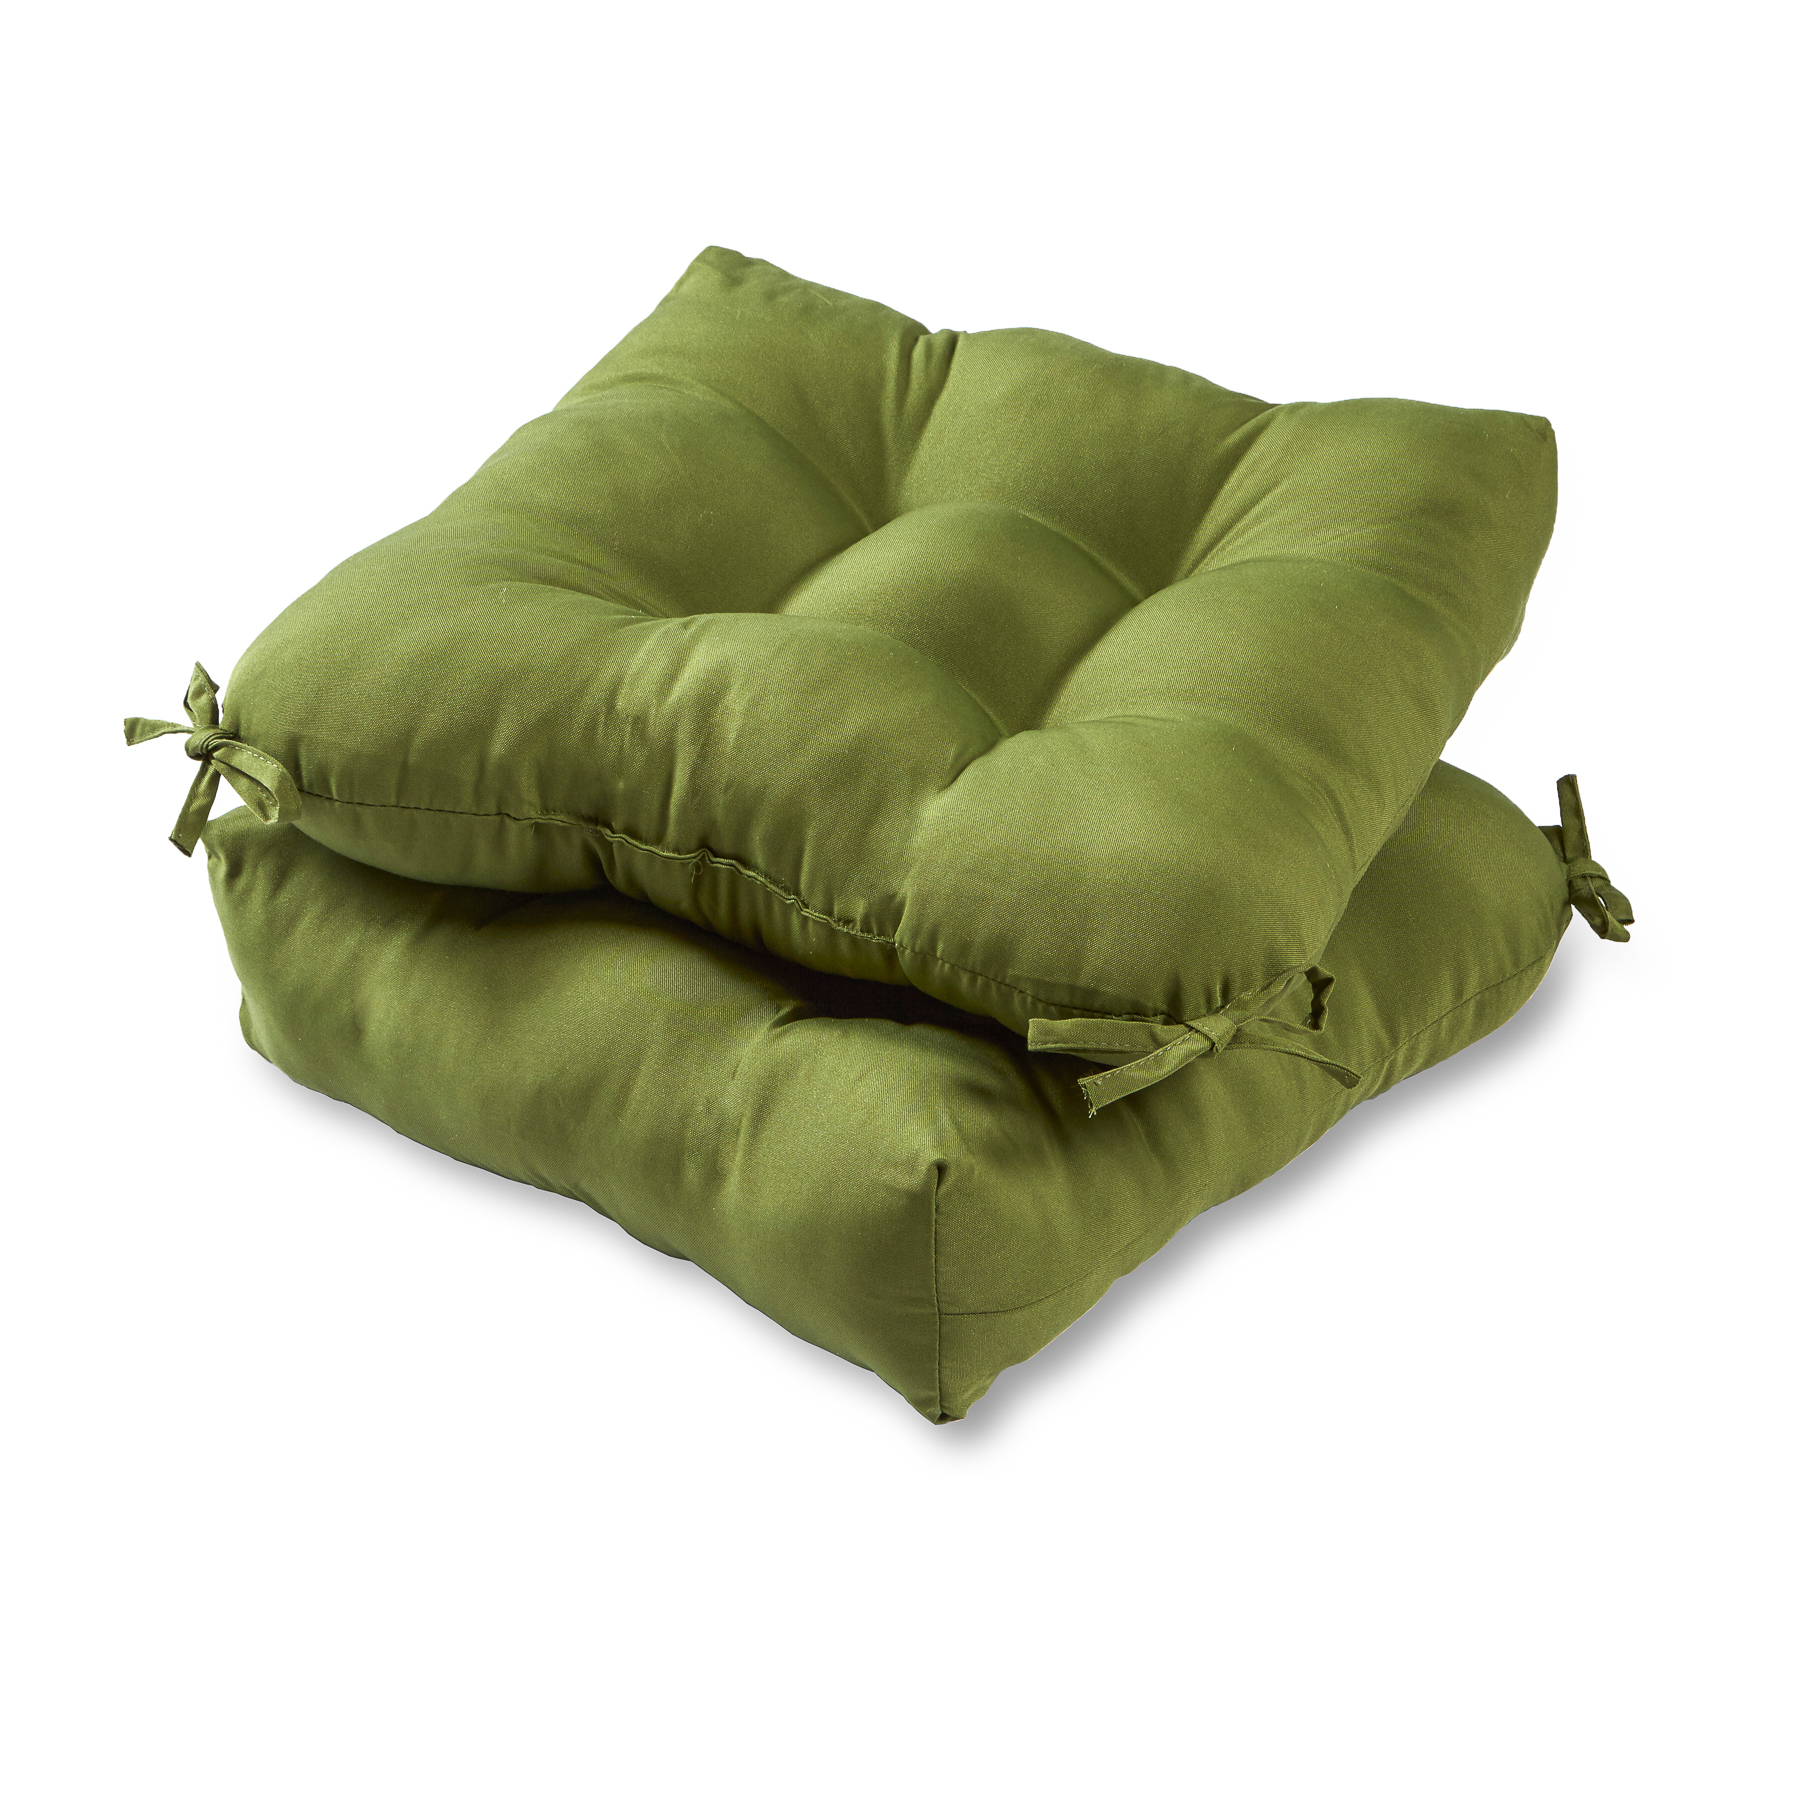 green chair cushions metal chaise lounge chairs with wheels greendale home fashions set of two 20 quot outdoor